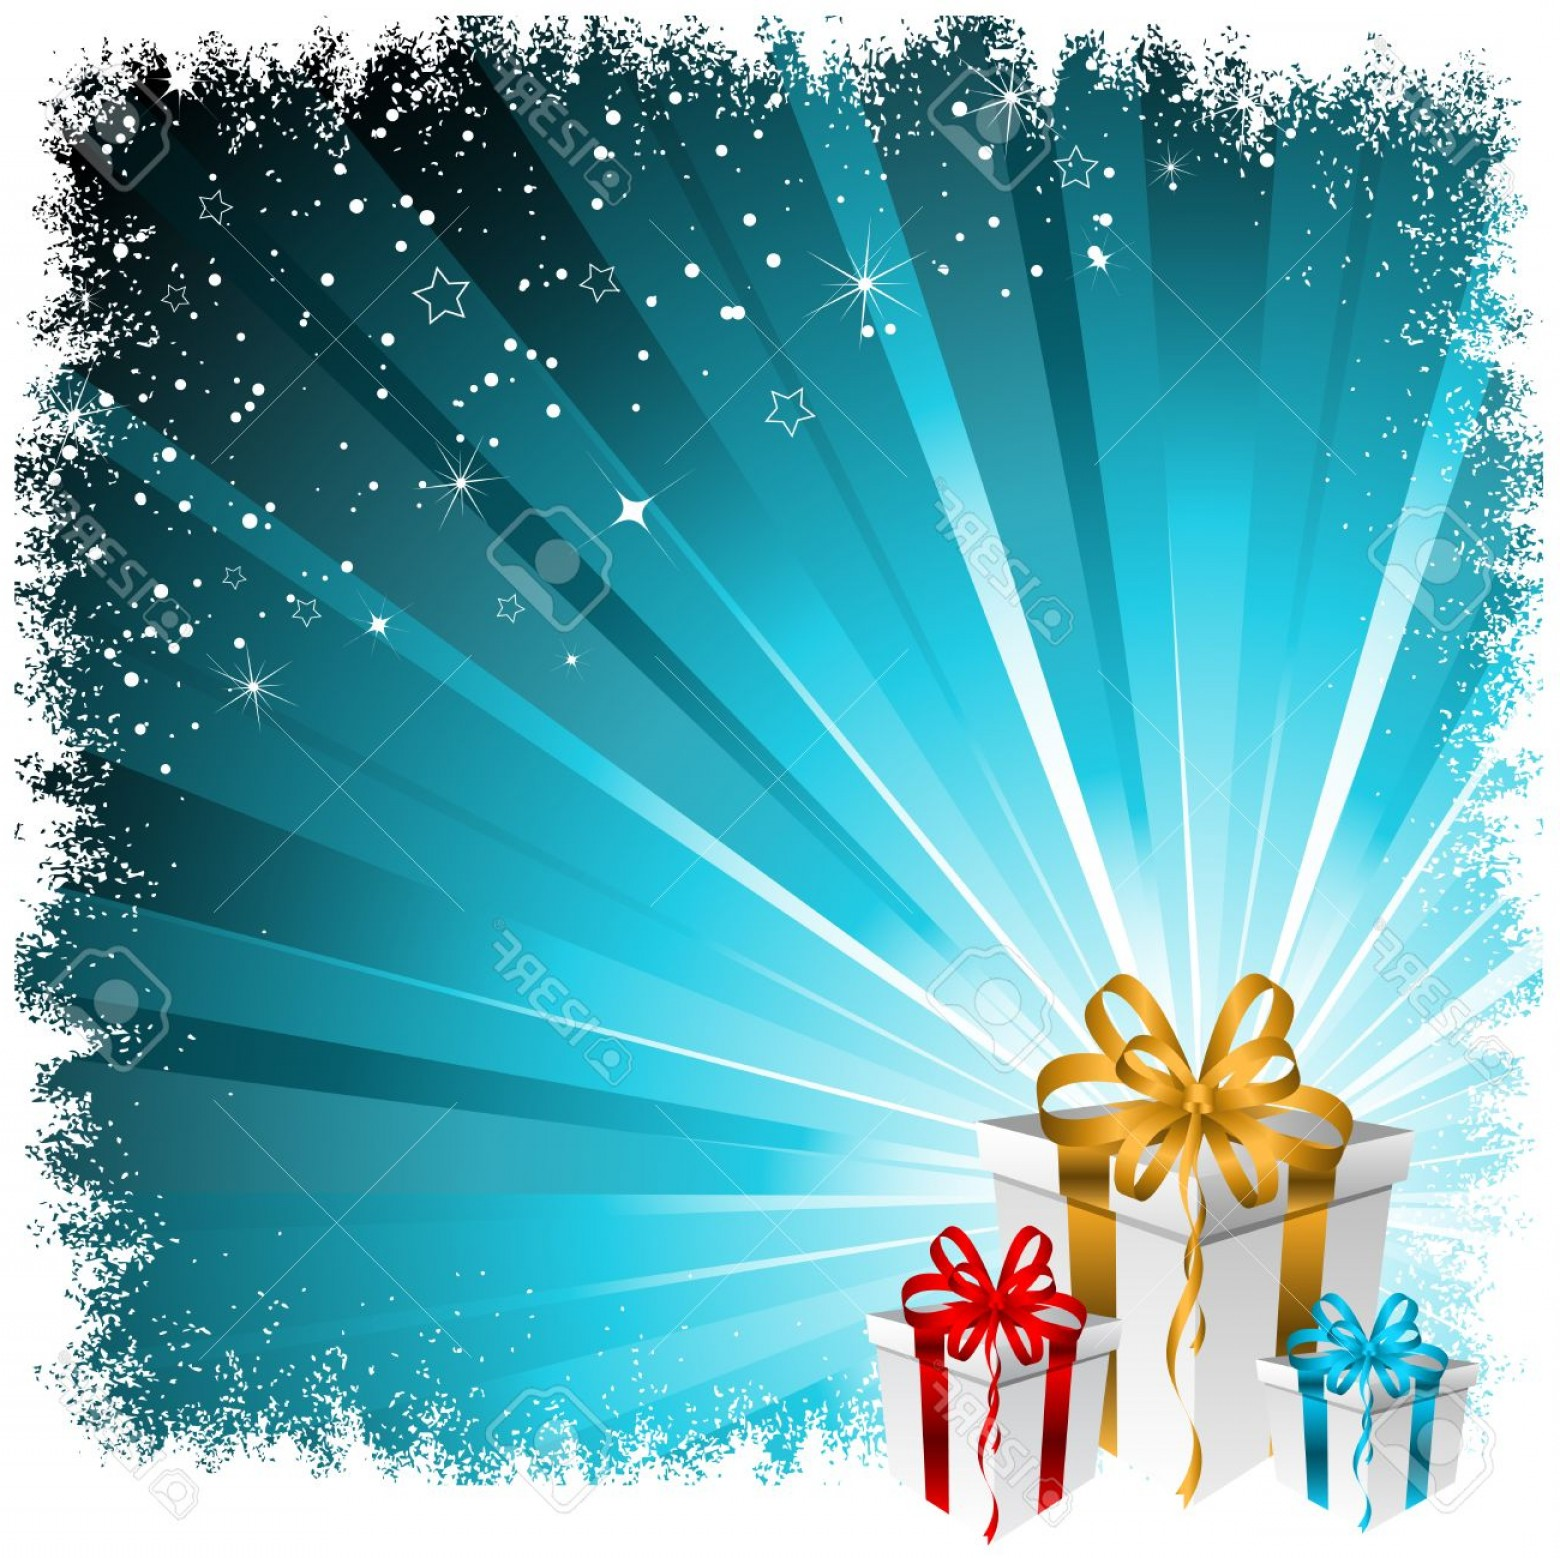 Vector Art Free Christmas Gift: Photochristmas Gift Background With Snowy Border